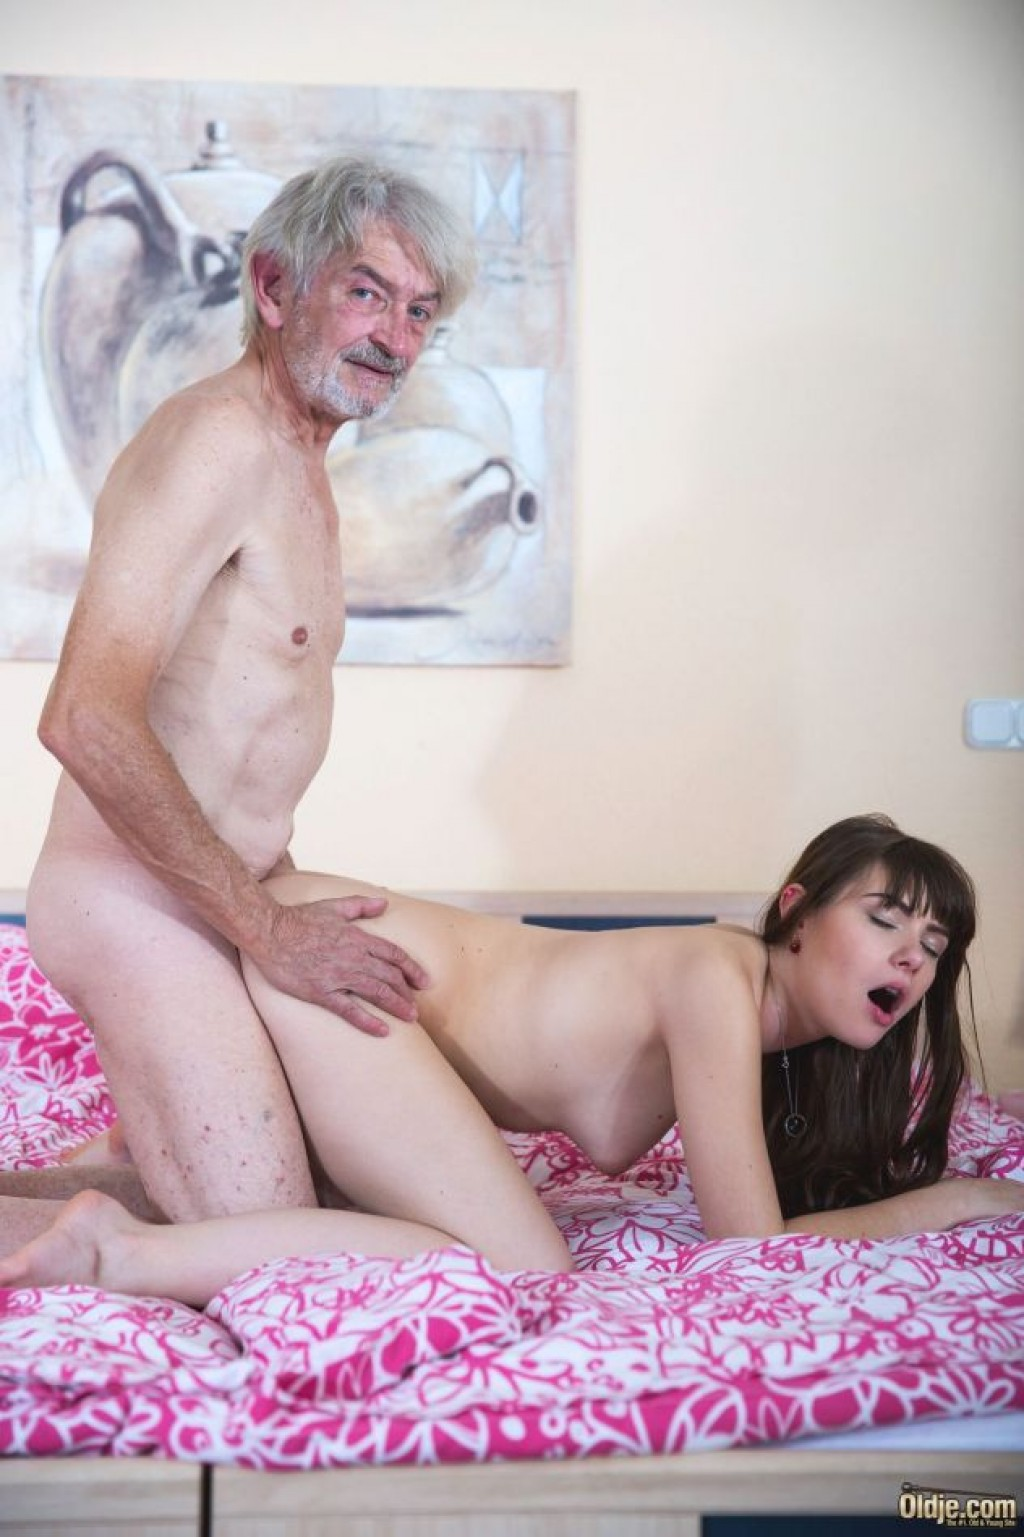 18 years old luna does her first porn casting 9